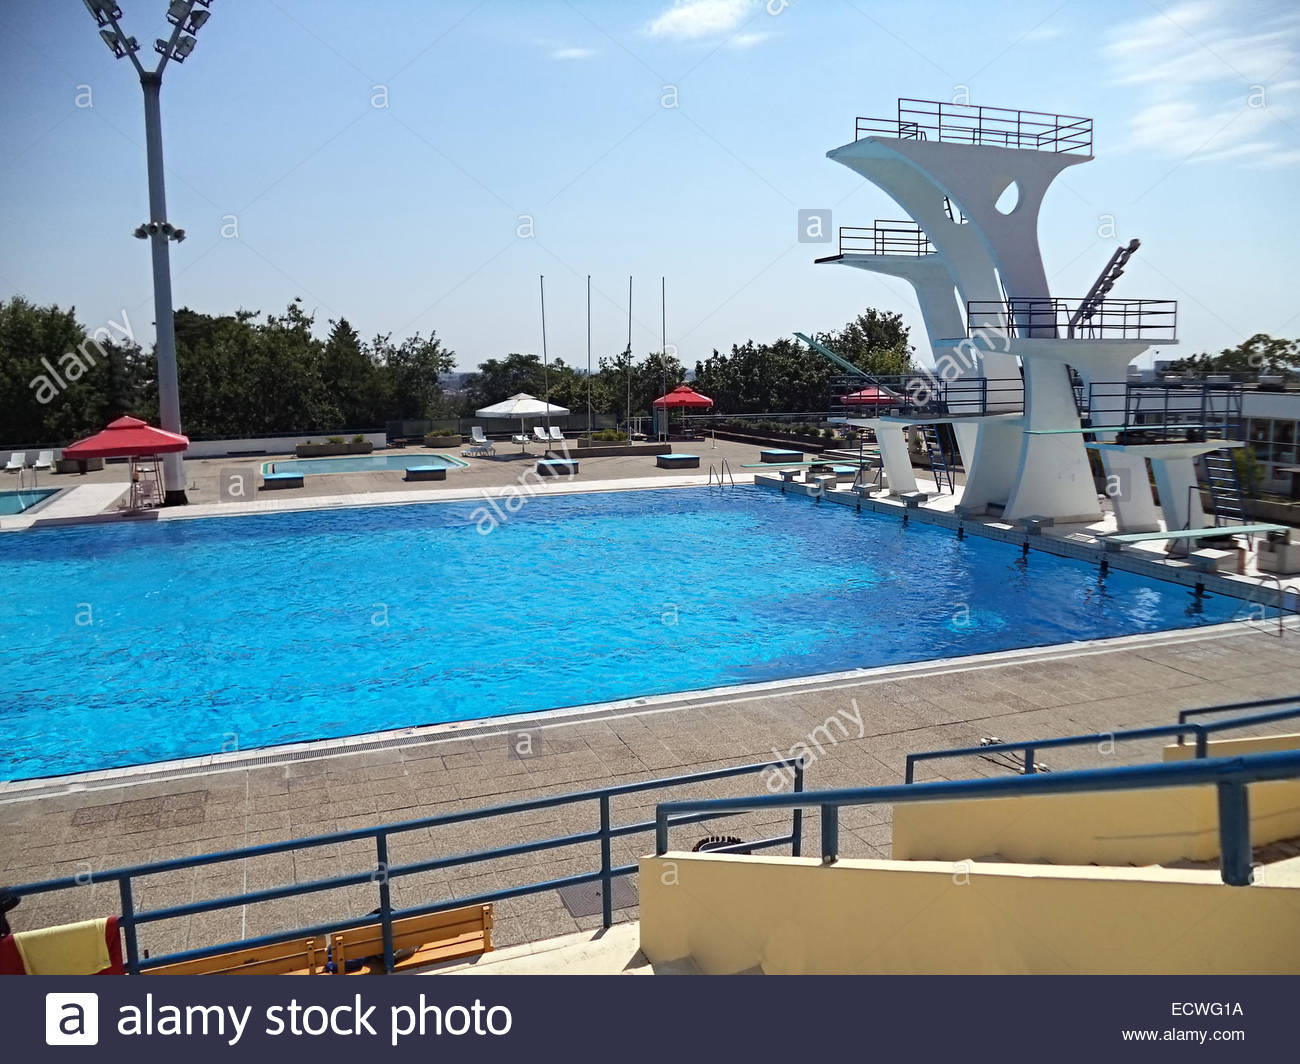 high diving board at a public swimming pool stock photo